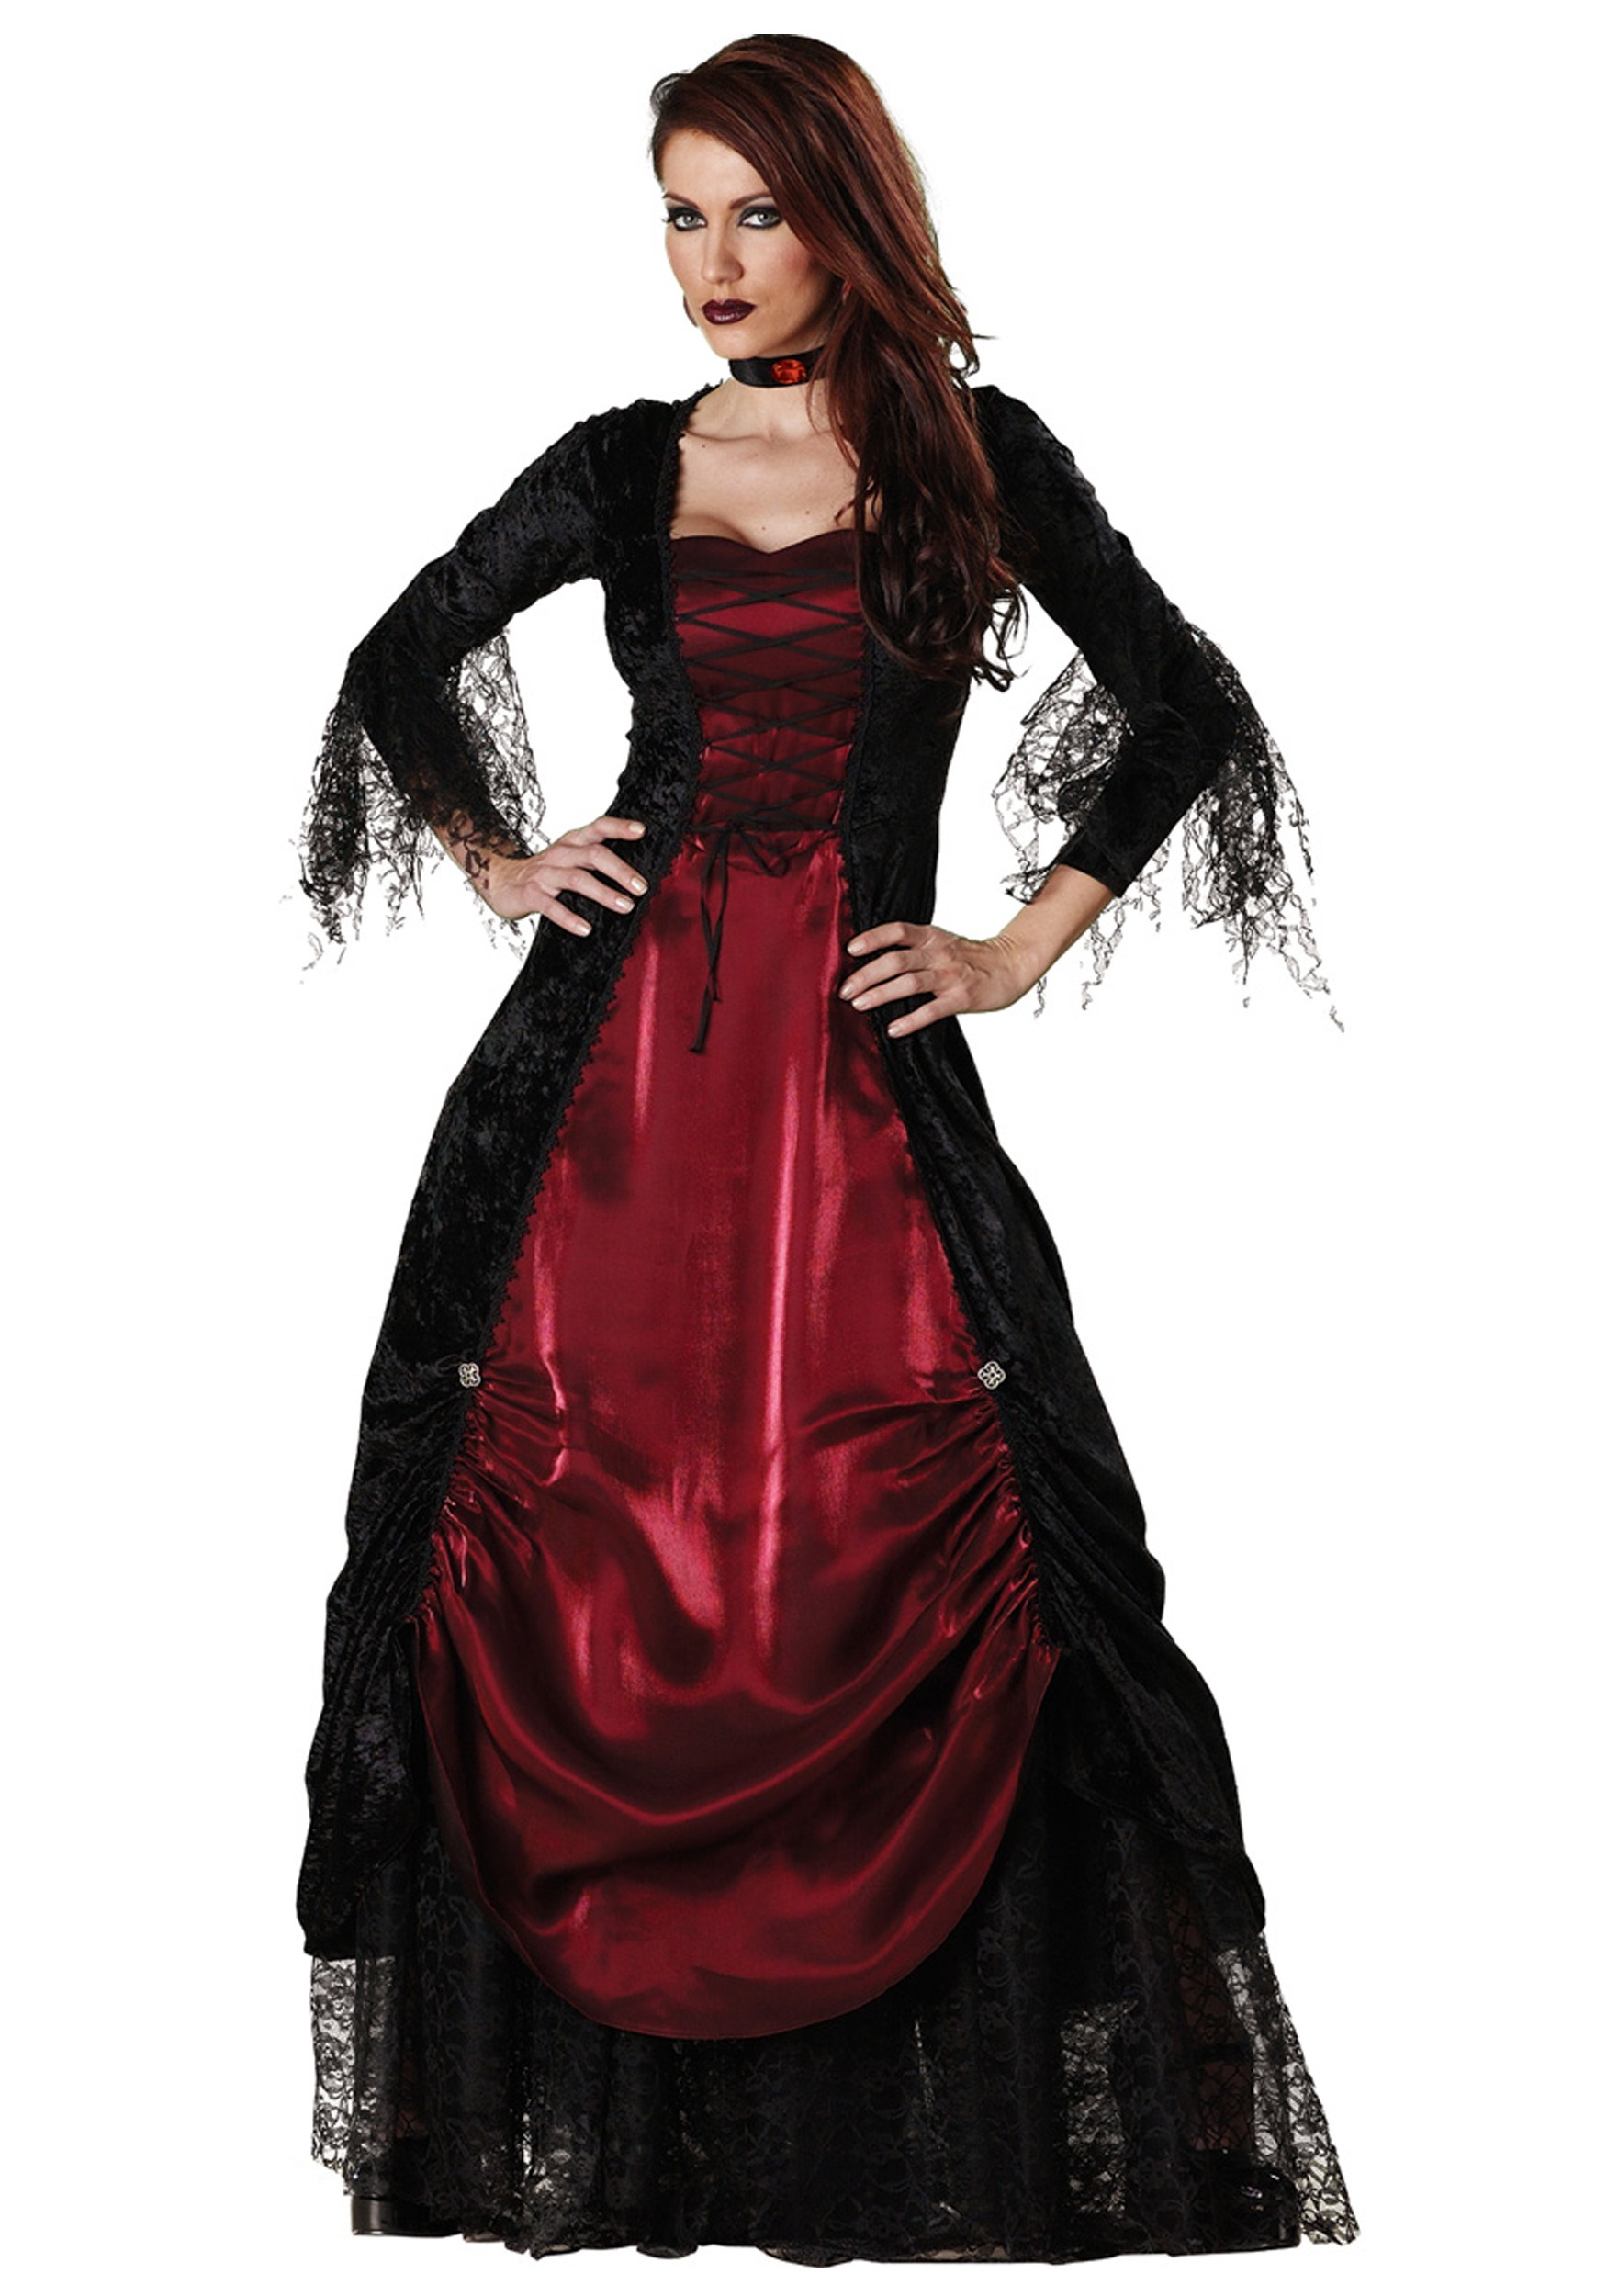 deluxe vampira costume. Black Bedroom Furniture Sets. Home Design Ideas